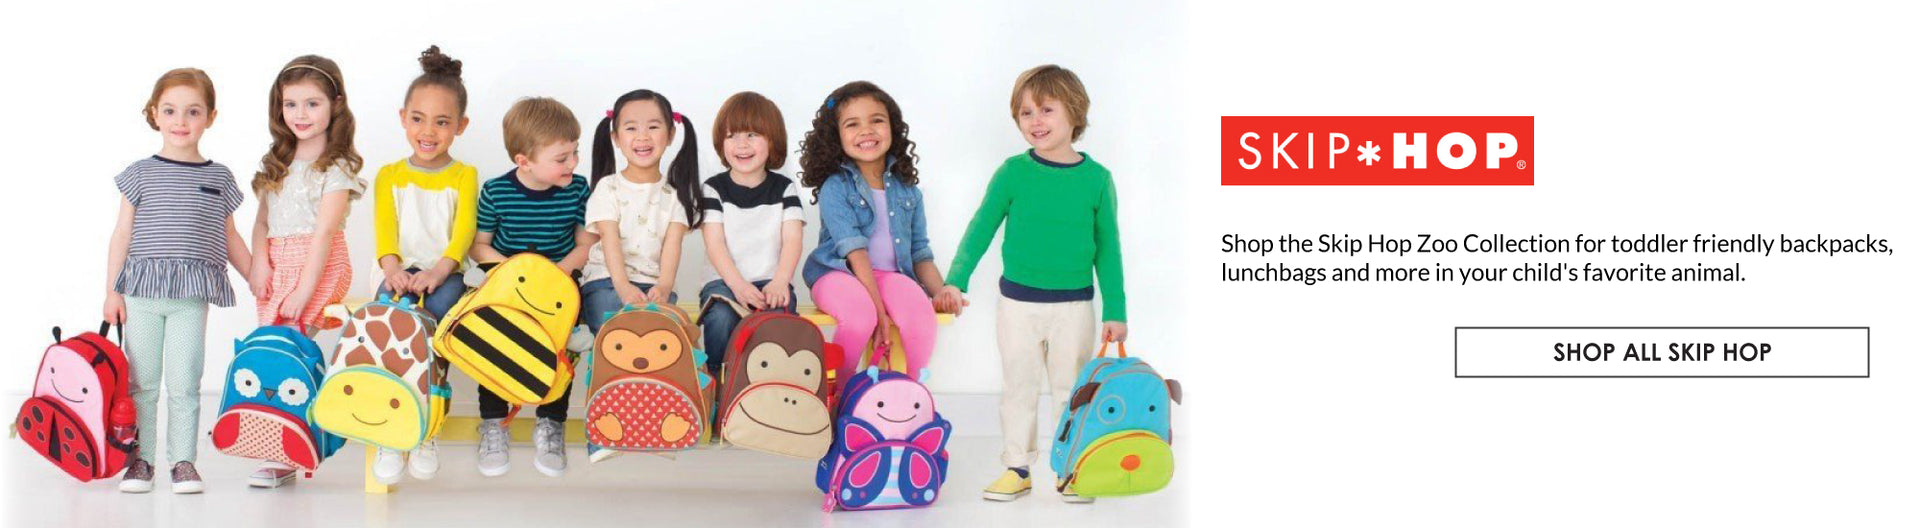 Skip Hop Backpacks and Lunch Bags - Canada Luggage Depot